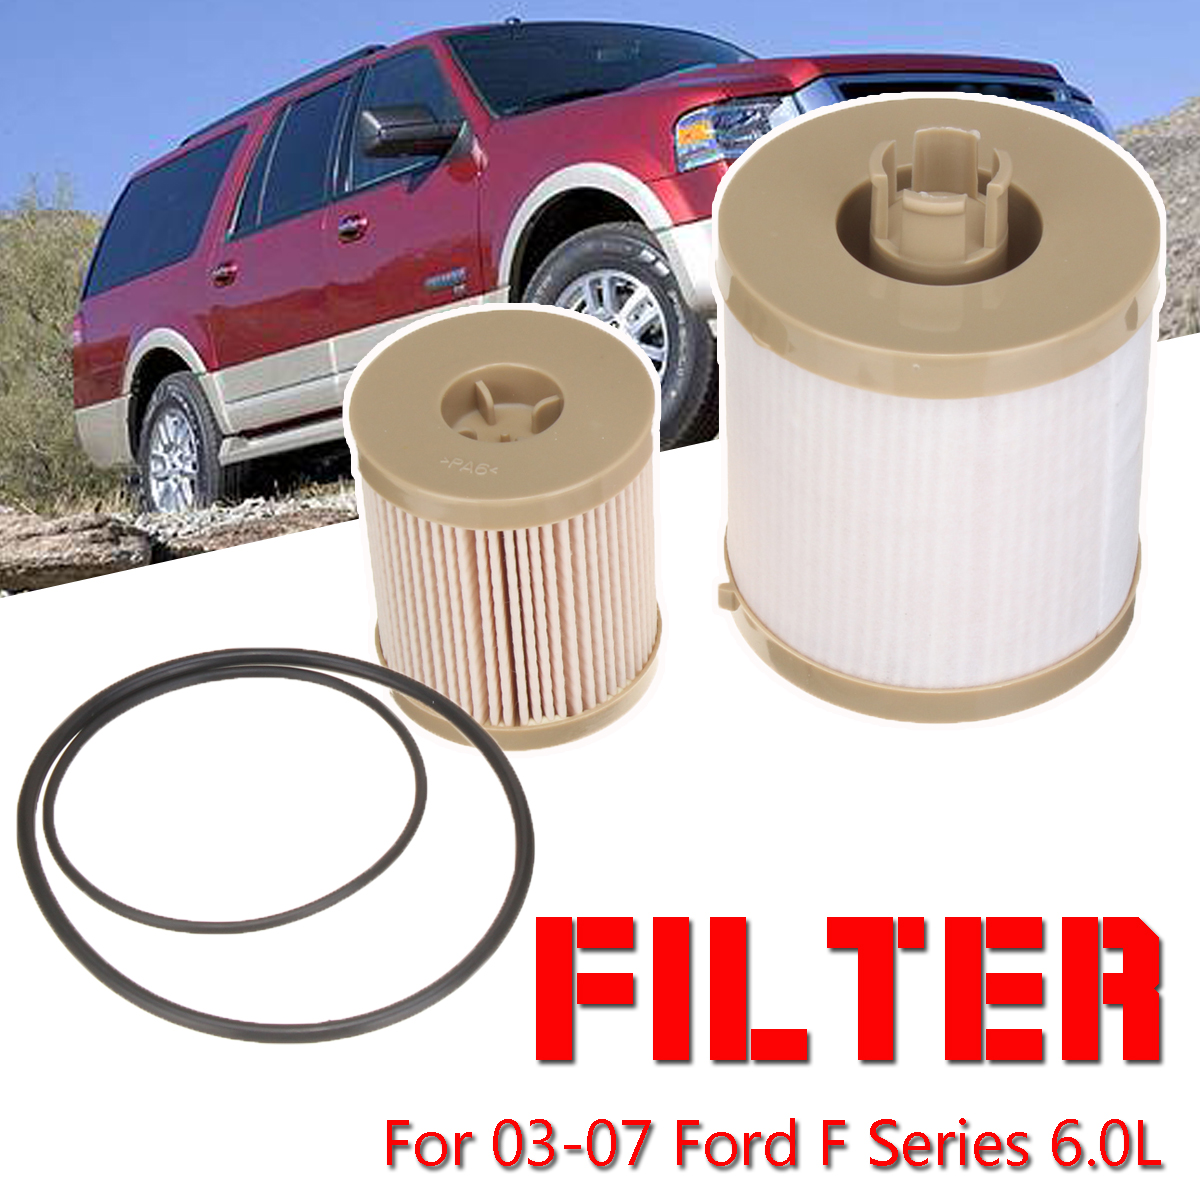 small resolution of automobile oil filters petrol gas gasoline liquid fuel filters car oil filter replacement for ford 2003